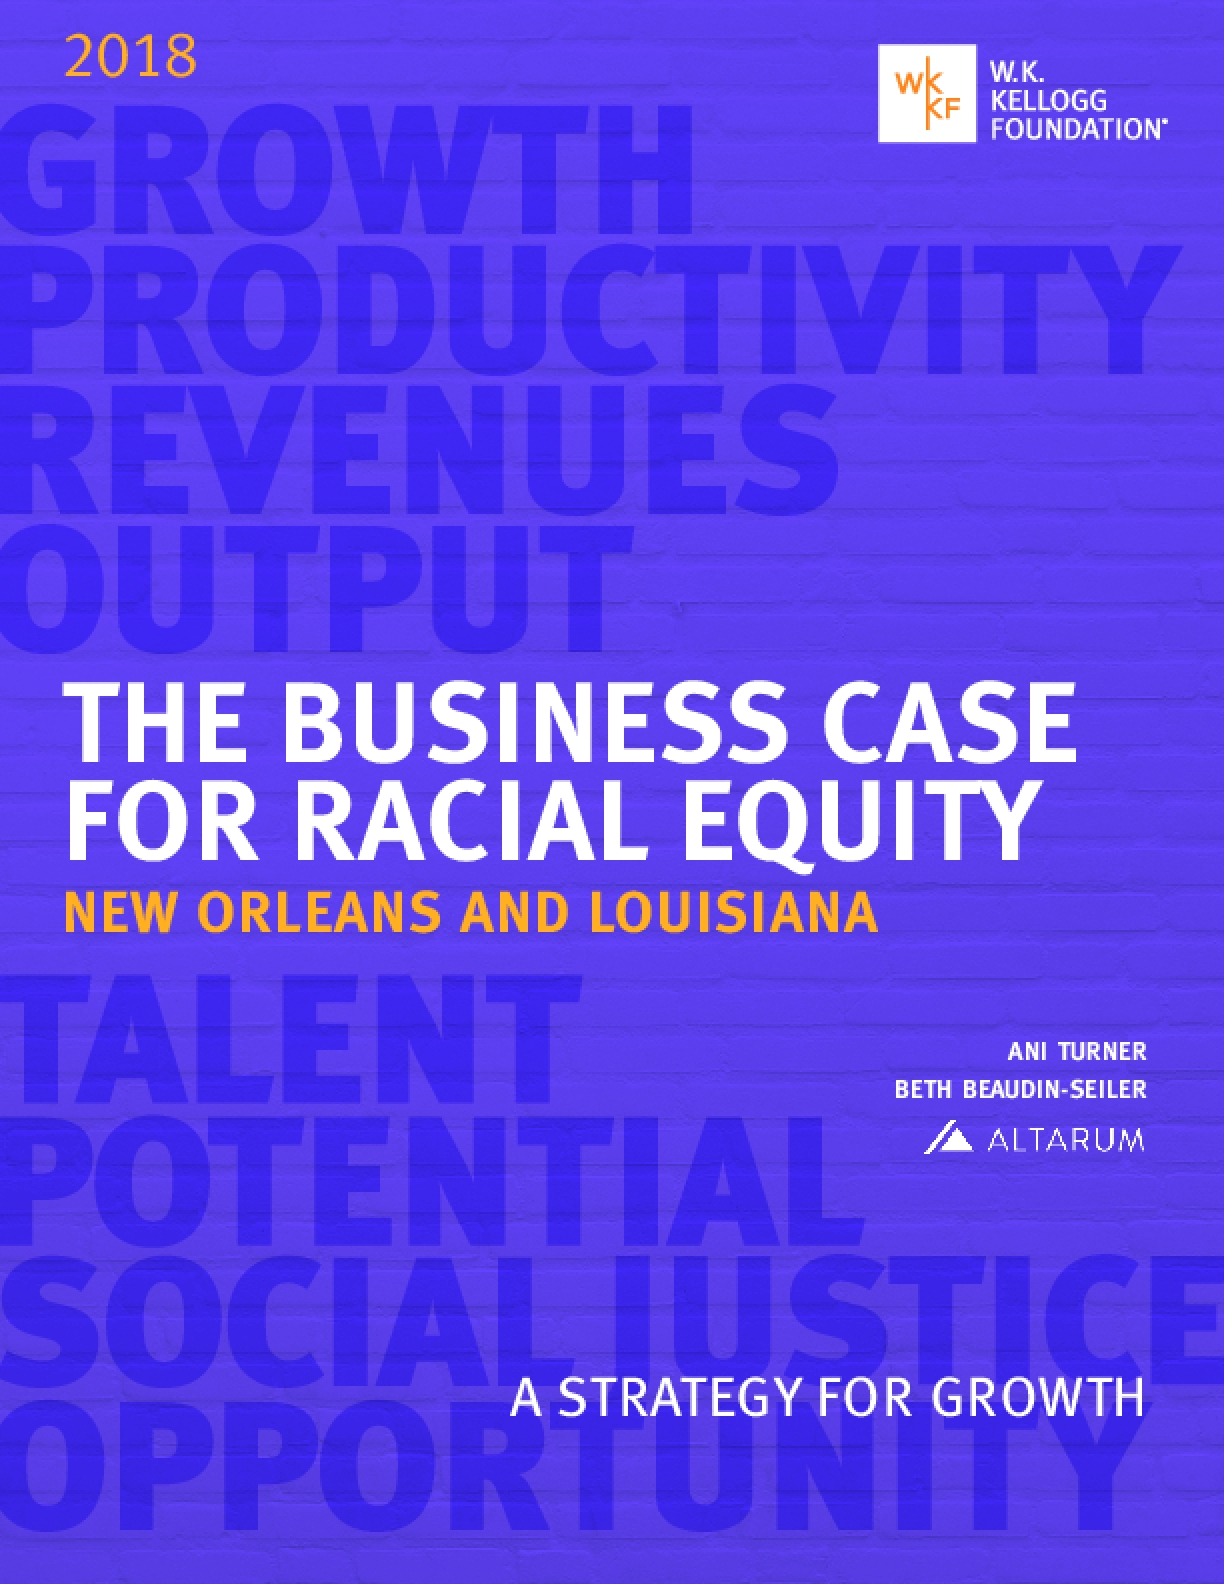 The Business Case for Racial Equity: New Orleans and Louisiana